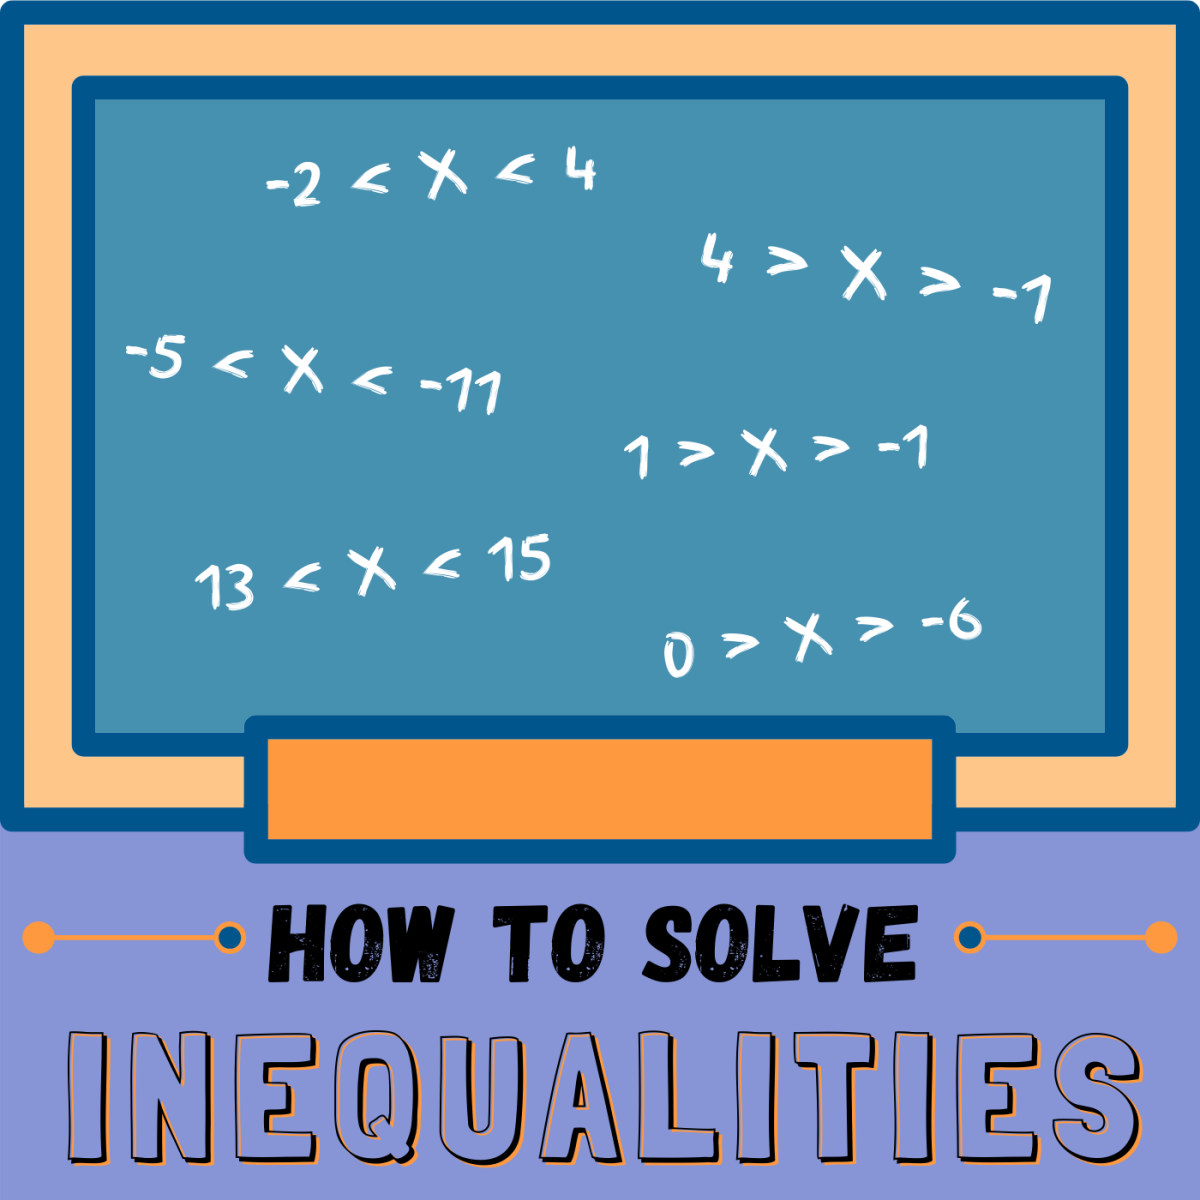 How to Solve an Inequality Between Two Numbers (With Examples)